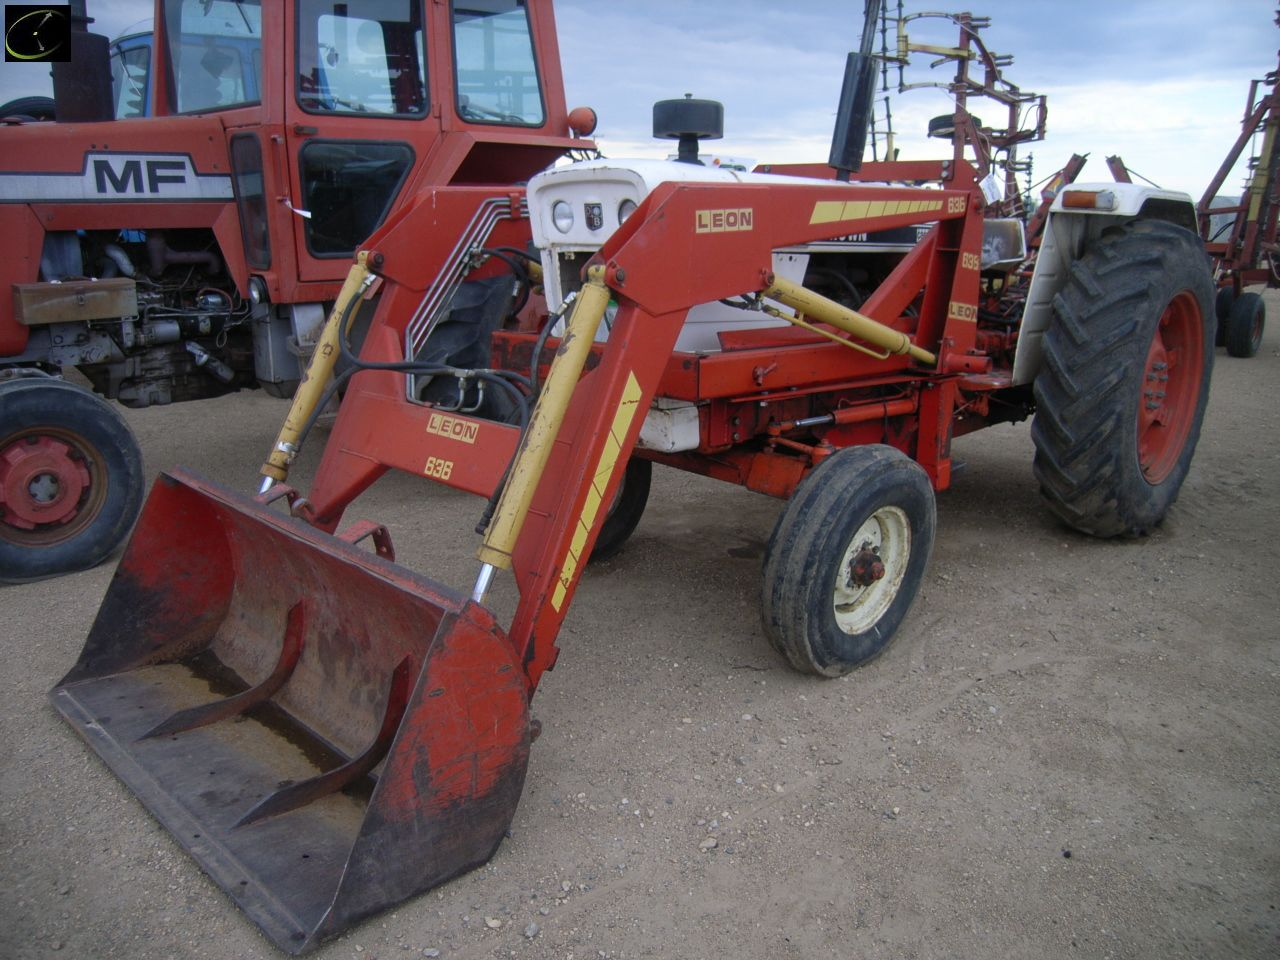 David Brown 1210 Tractor For Sale Images Of Home Design Wiring Diagram Std Trans 65 Hp Roughly 100 Hrs On New Motor Leon Loader